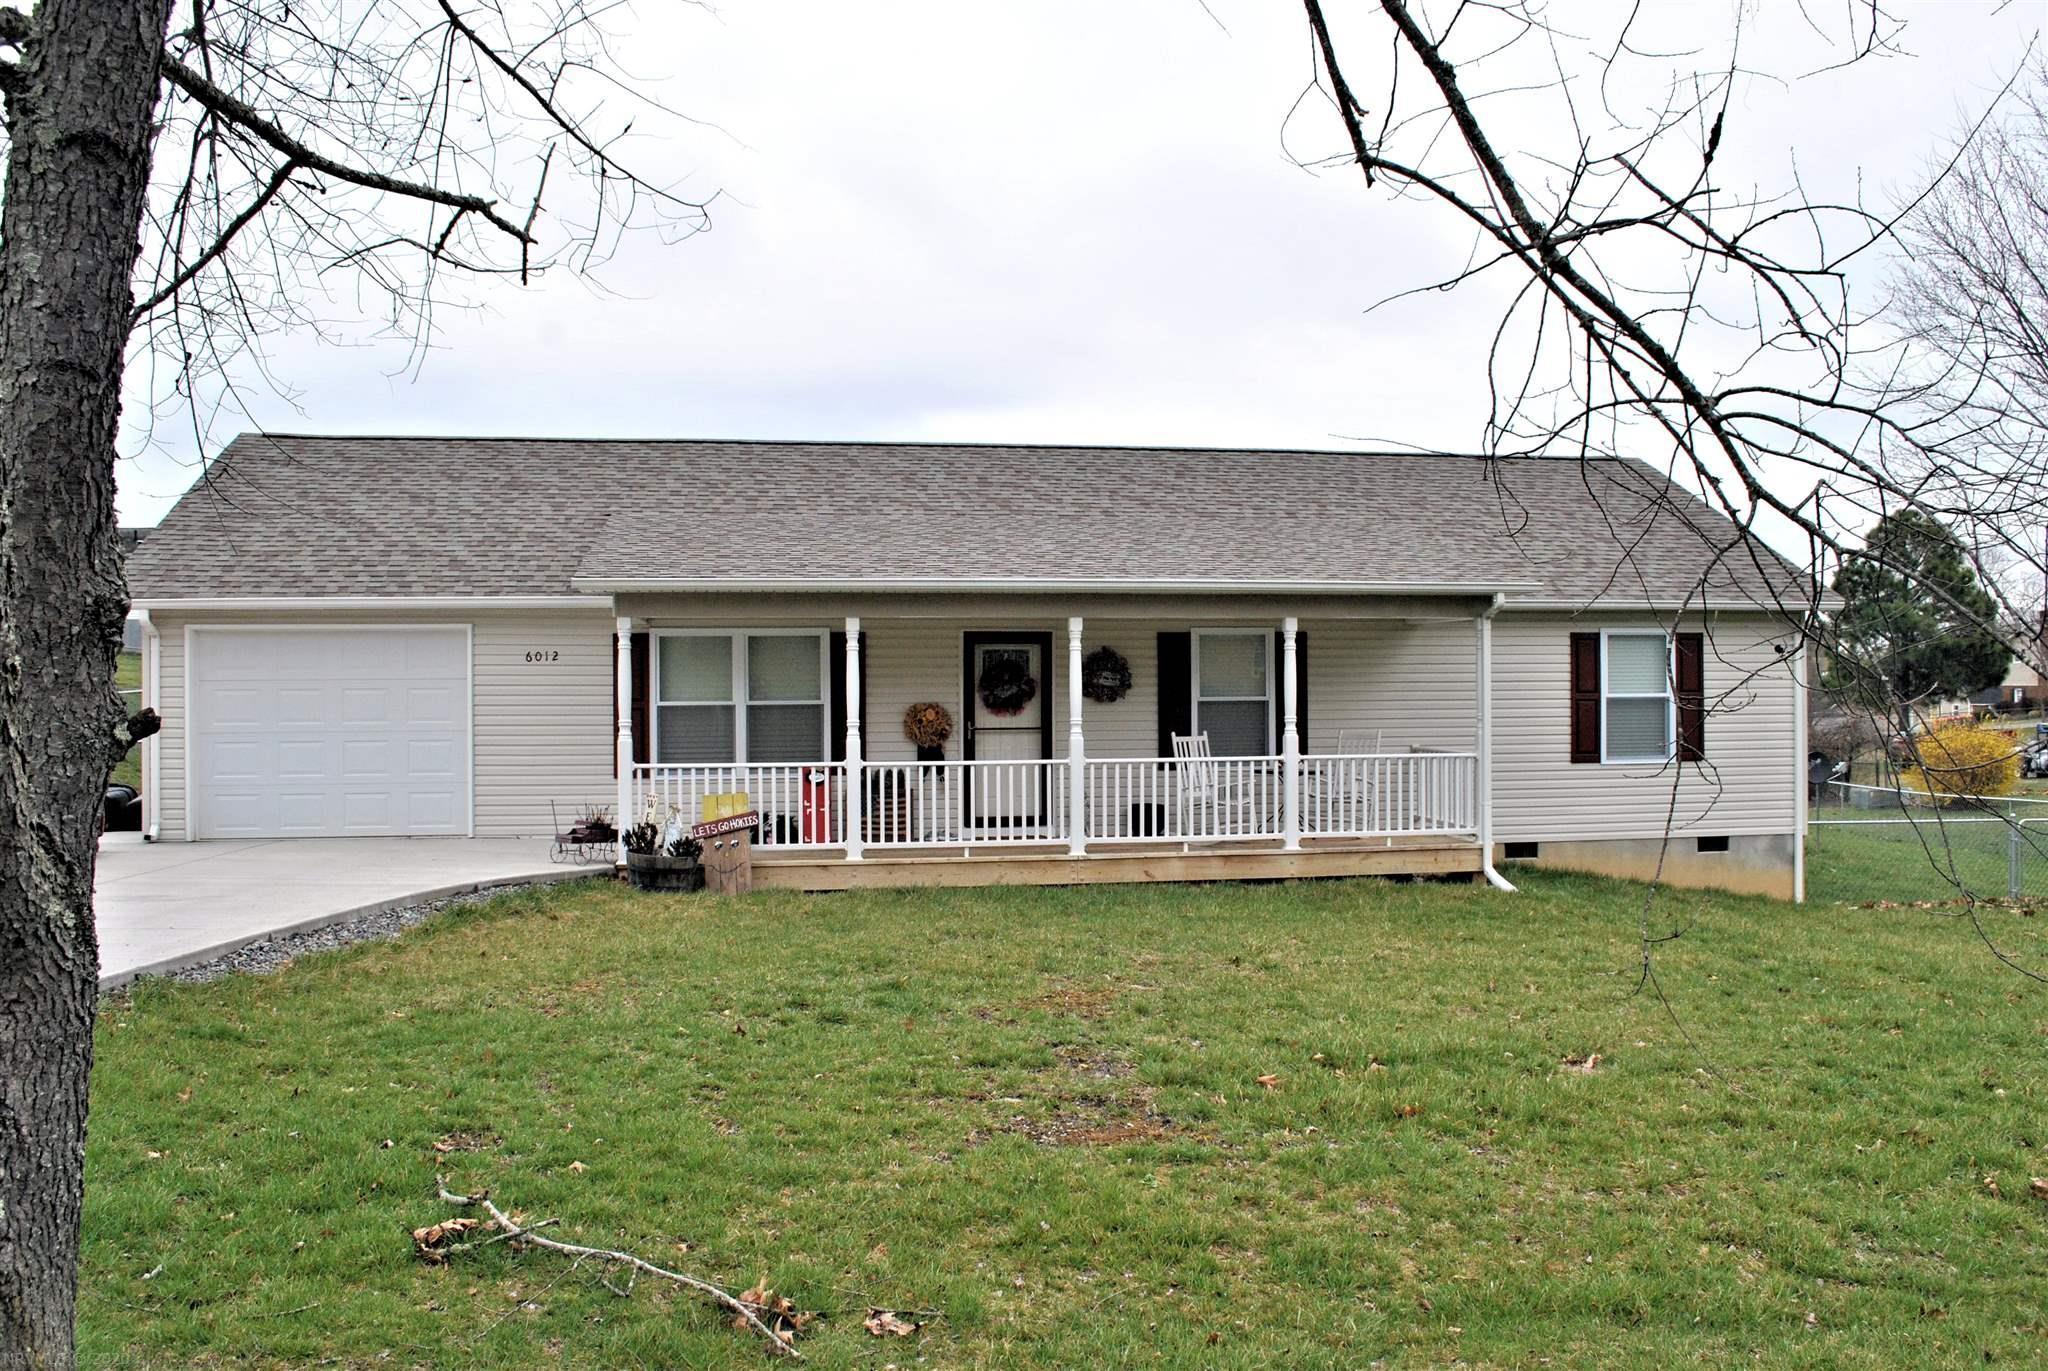 Move-in ready three bedroom, two bath ranch home with a covered front porch, single car garage, large flat fenced-in back yard with garden shed and concrete driveway. Beautiful vinyl plank floors throughout the home and the eat-in kitchen with stainless steel appliances, leads to back deck.  Nice vaulted ceilings in Living Room. This sweet home is located in a quaint Dublin neighborhood is less than 10 minutes from New River Community College and I-81.